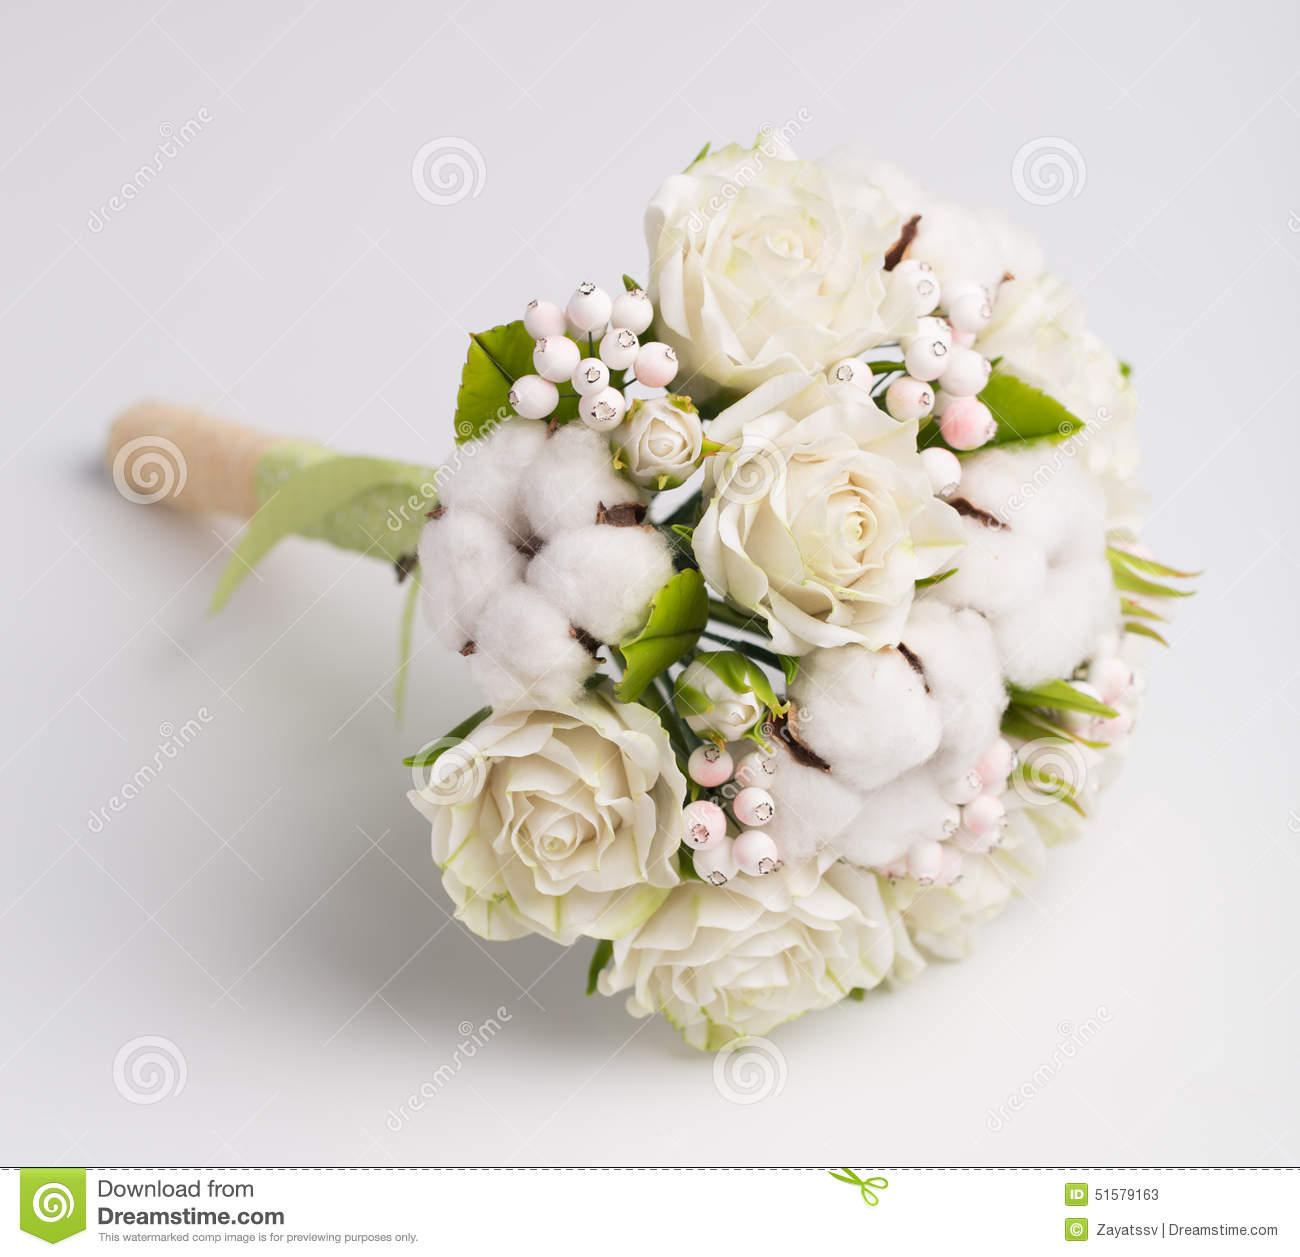 white wedding bouquet wallpaper - photo #43